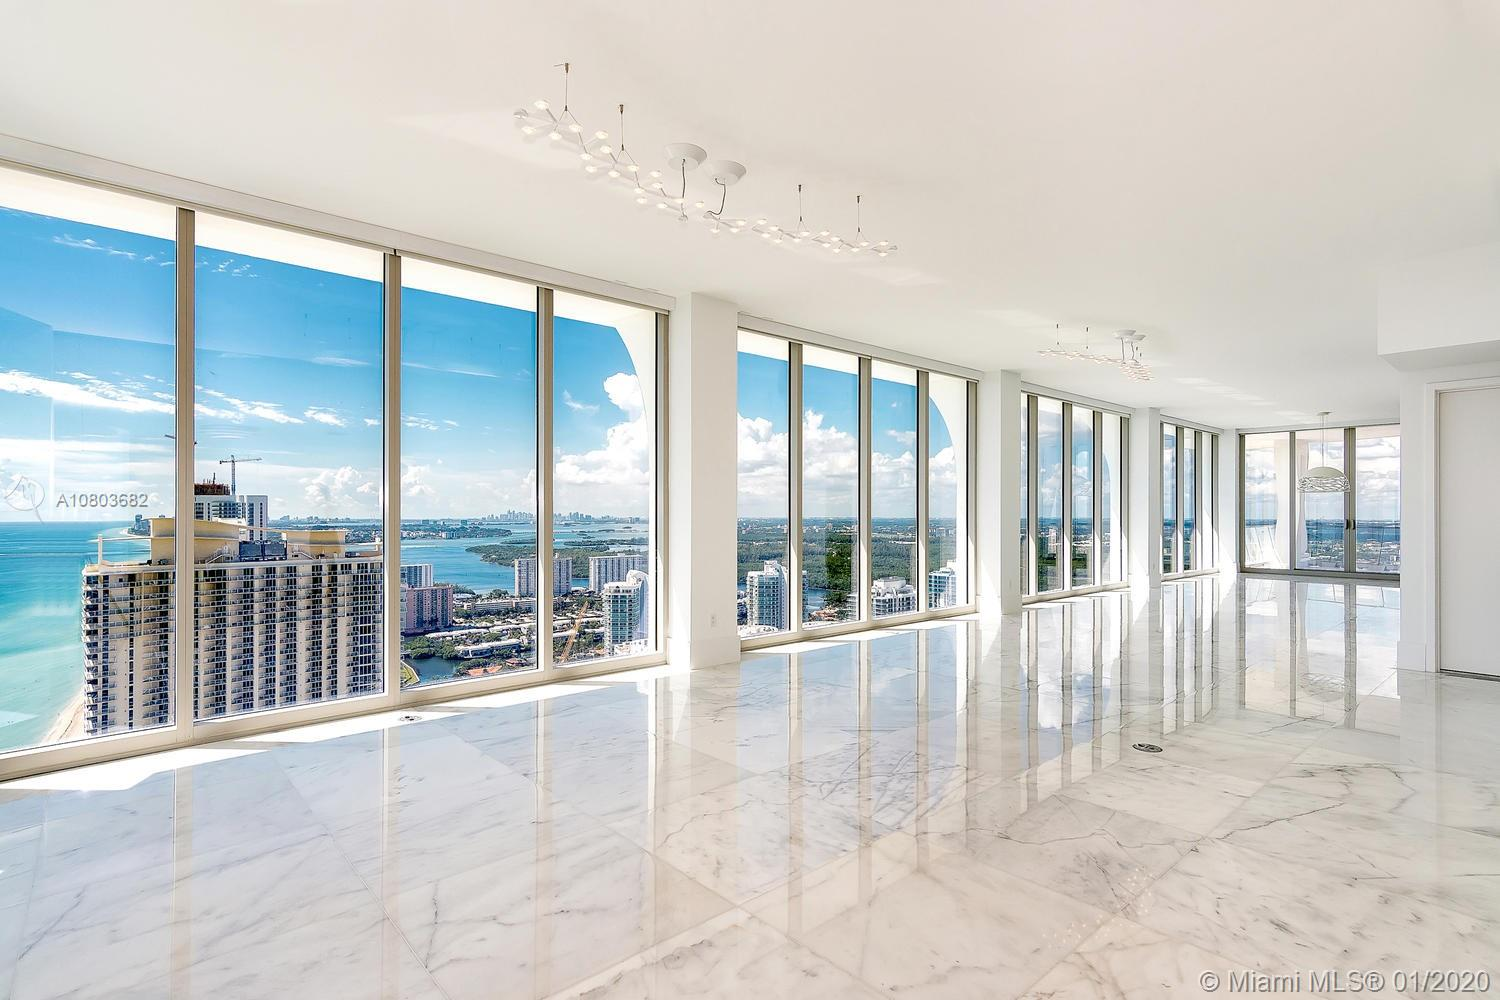 16901 Collins Ave, Unit #4201 Luxury Real Estate